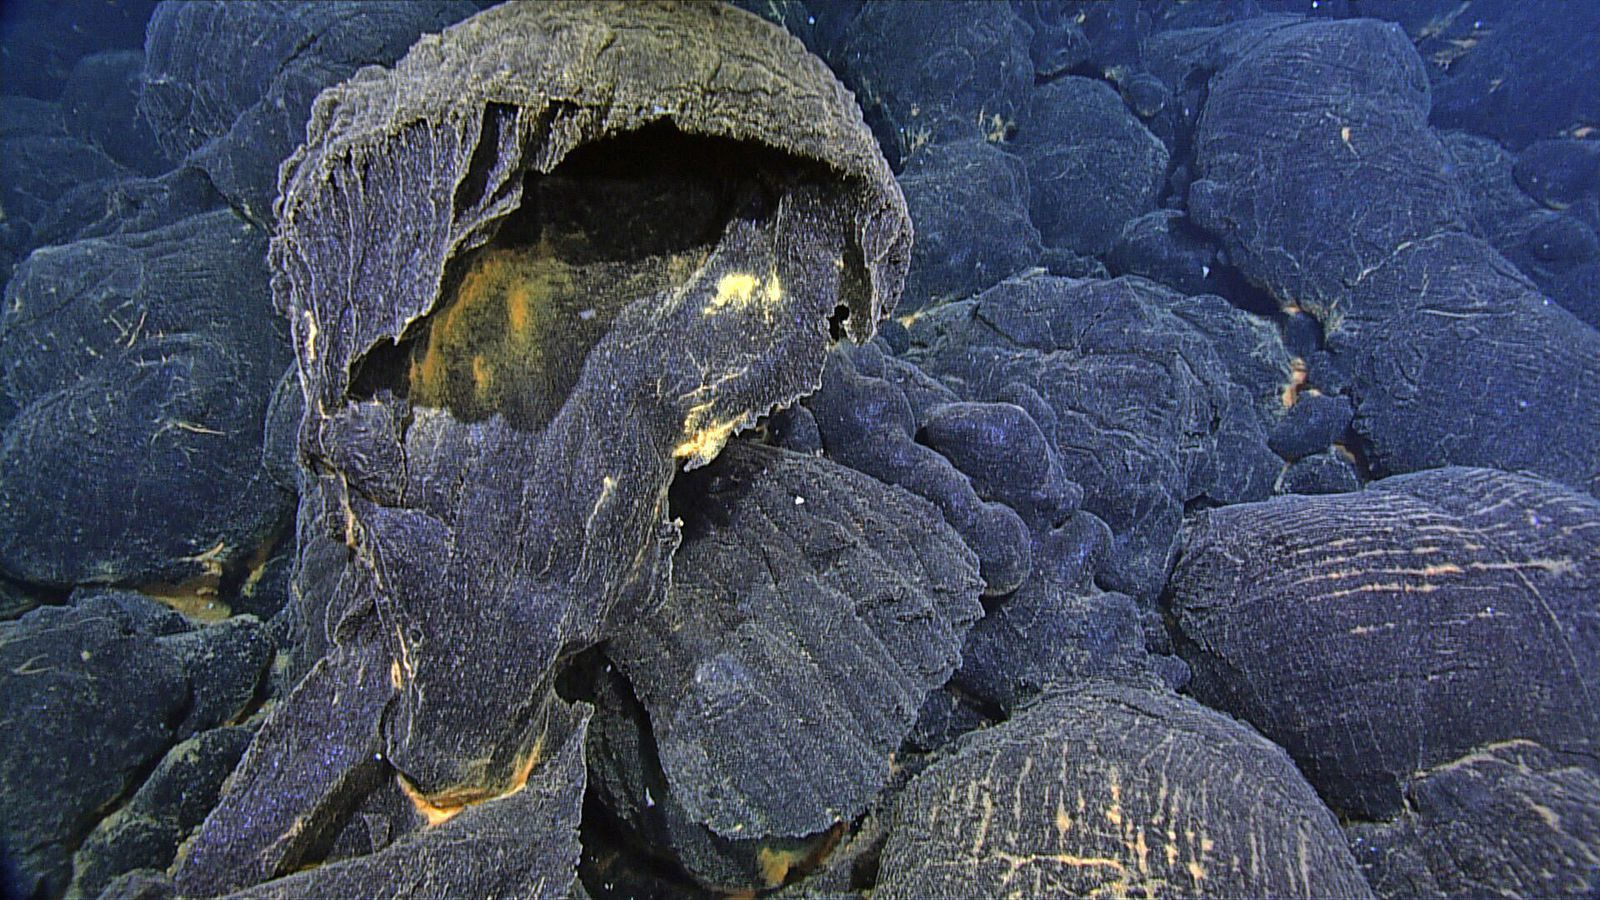 Axial seamount - pillow lavas exploded, dating from April 2015 eruption - one click to see full screen - doc. MBARI